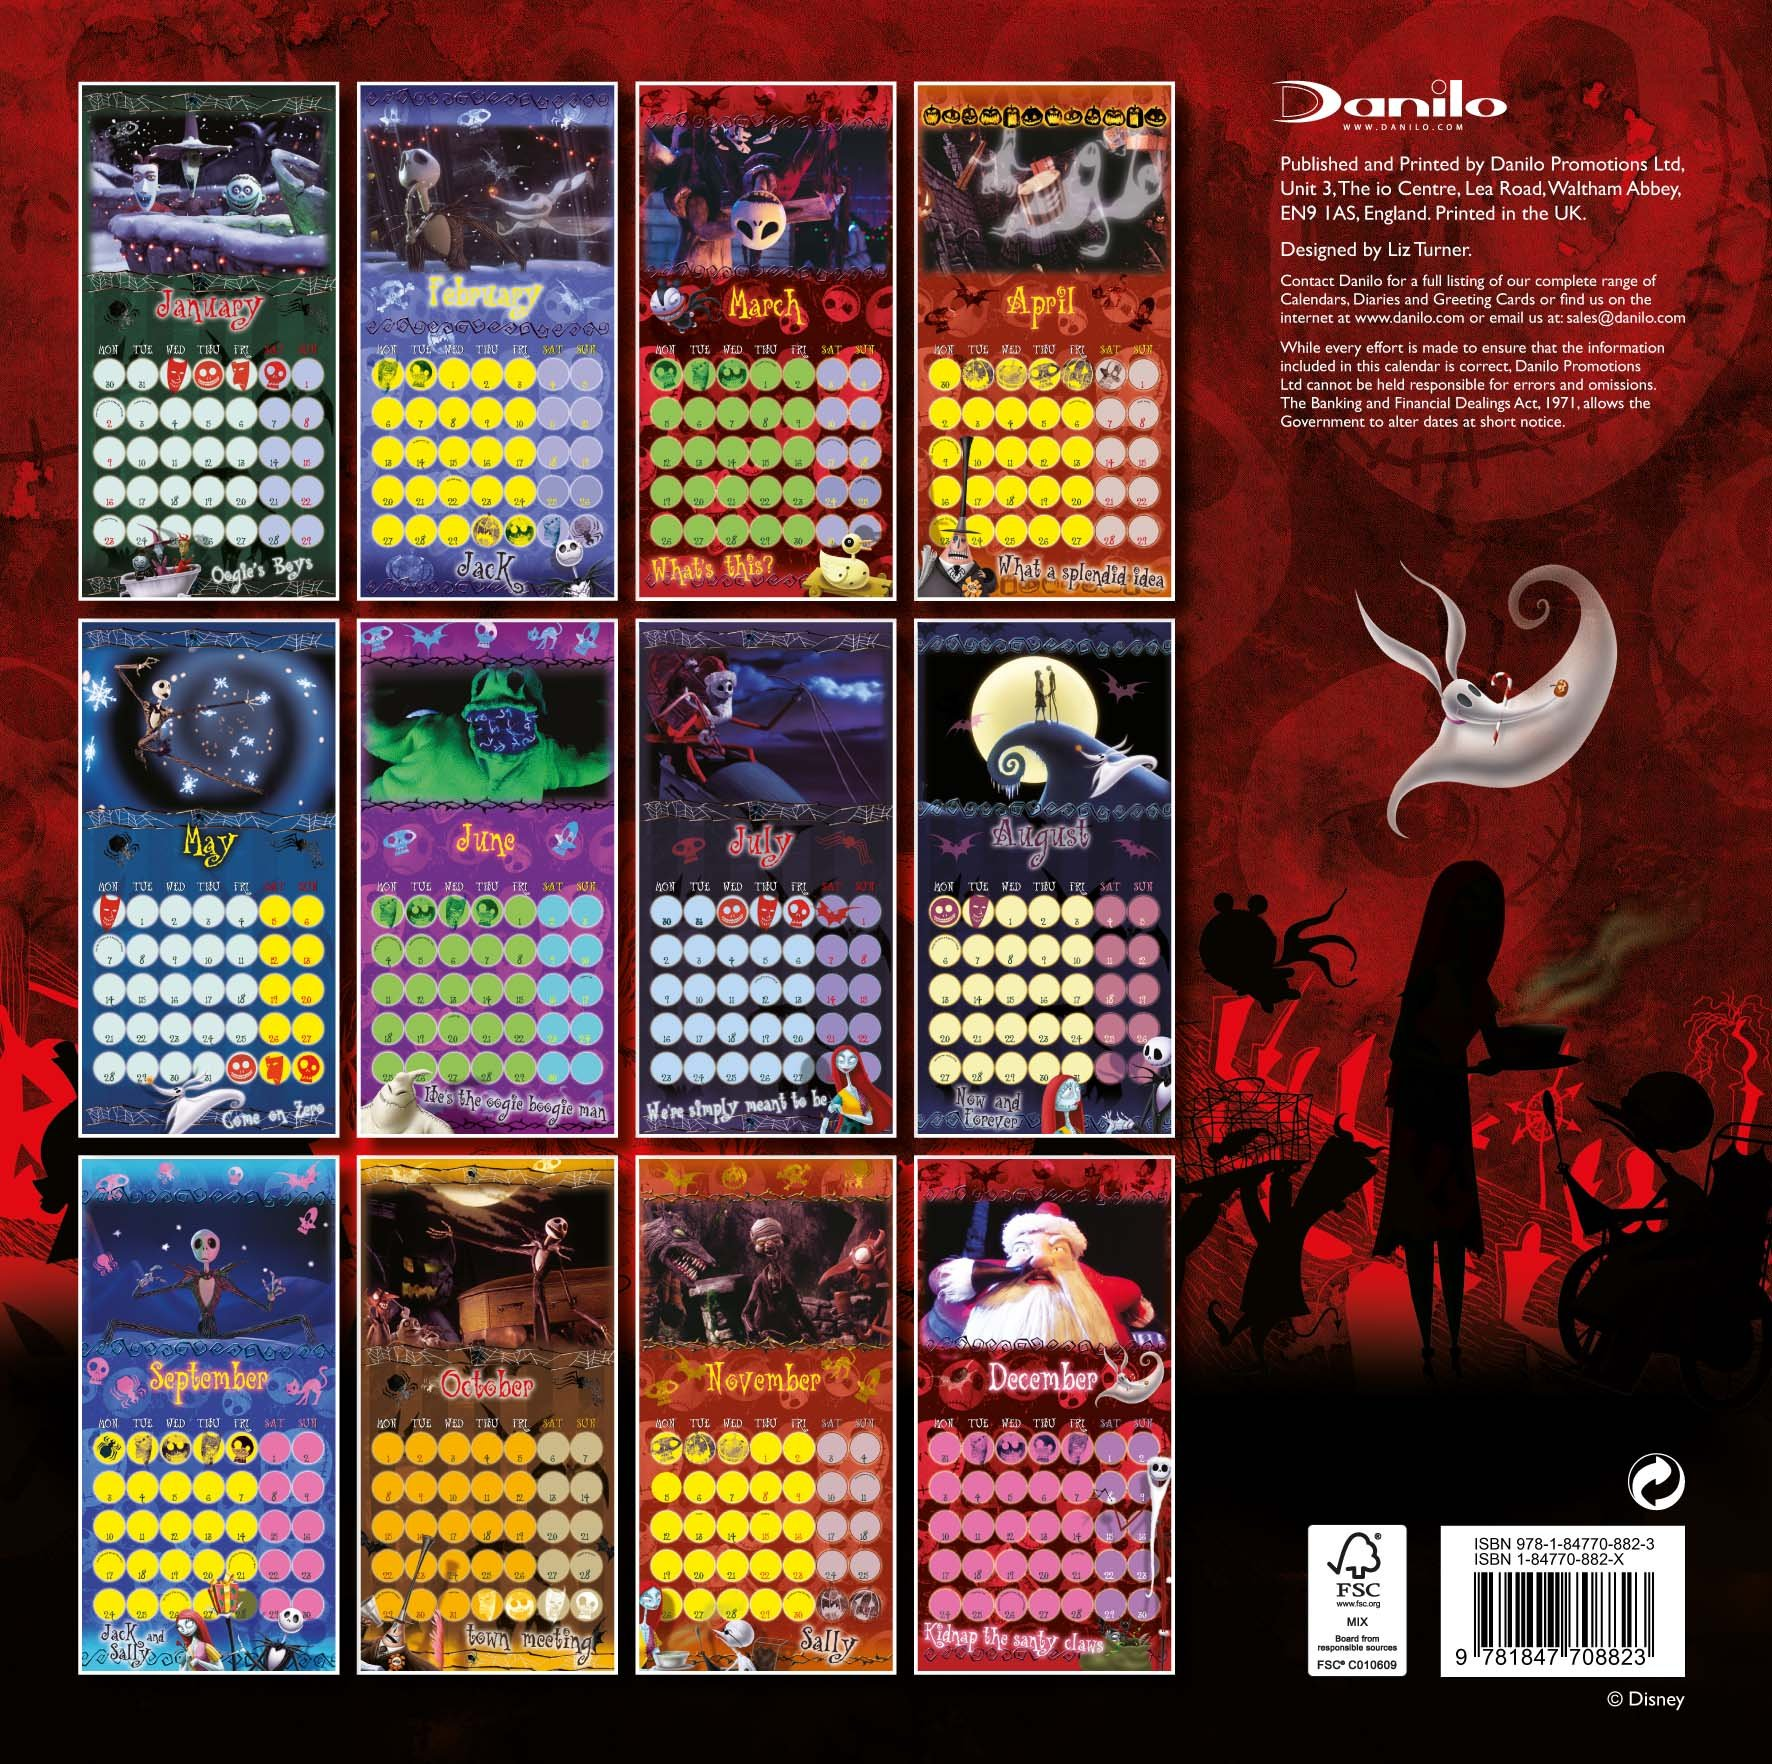 Official Nightmare Before Christmas Calendar 2012: 9781847708823 ...